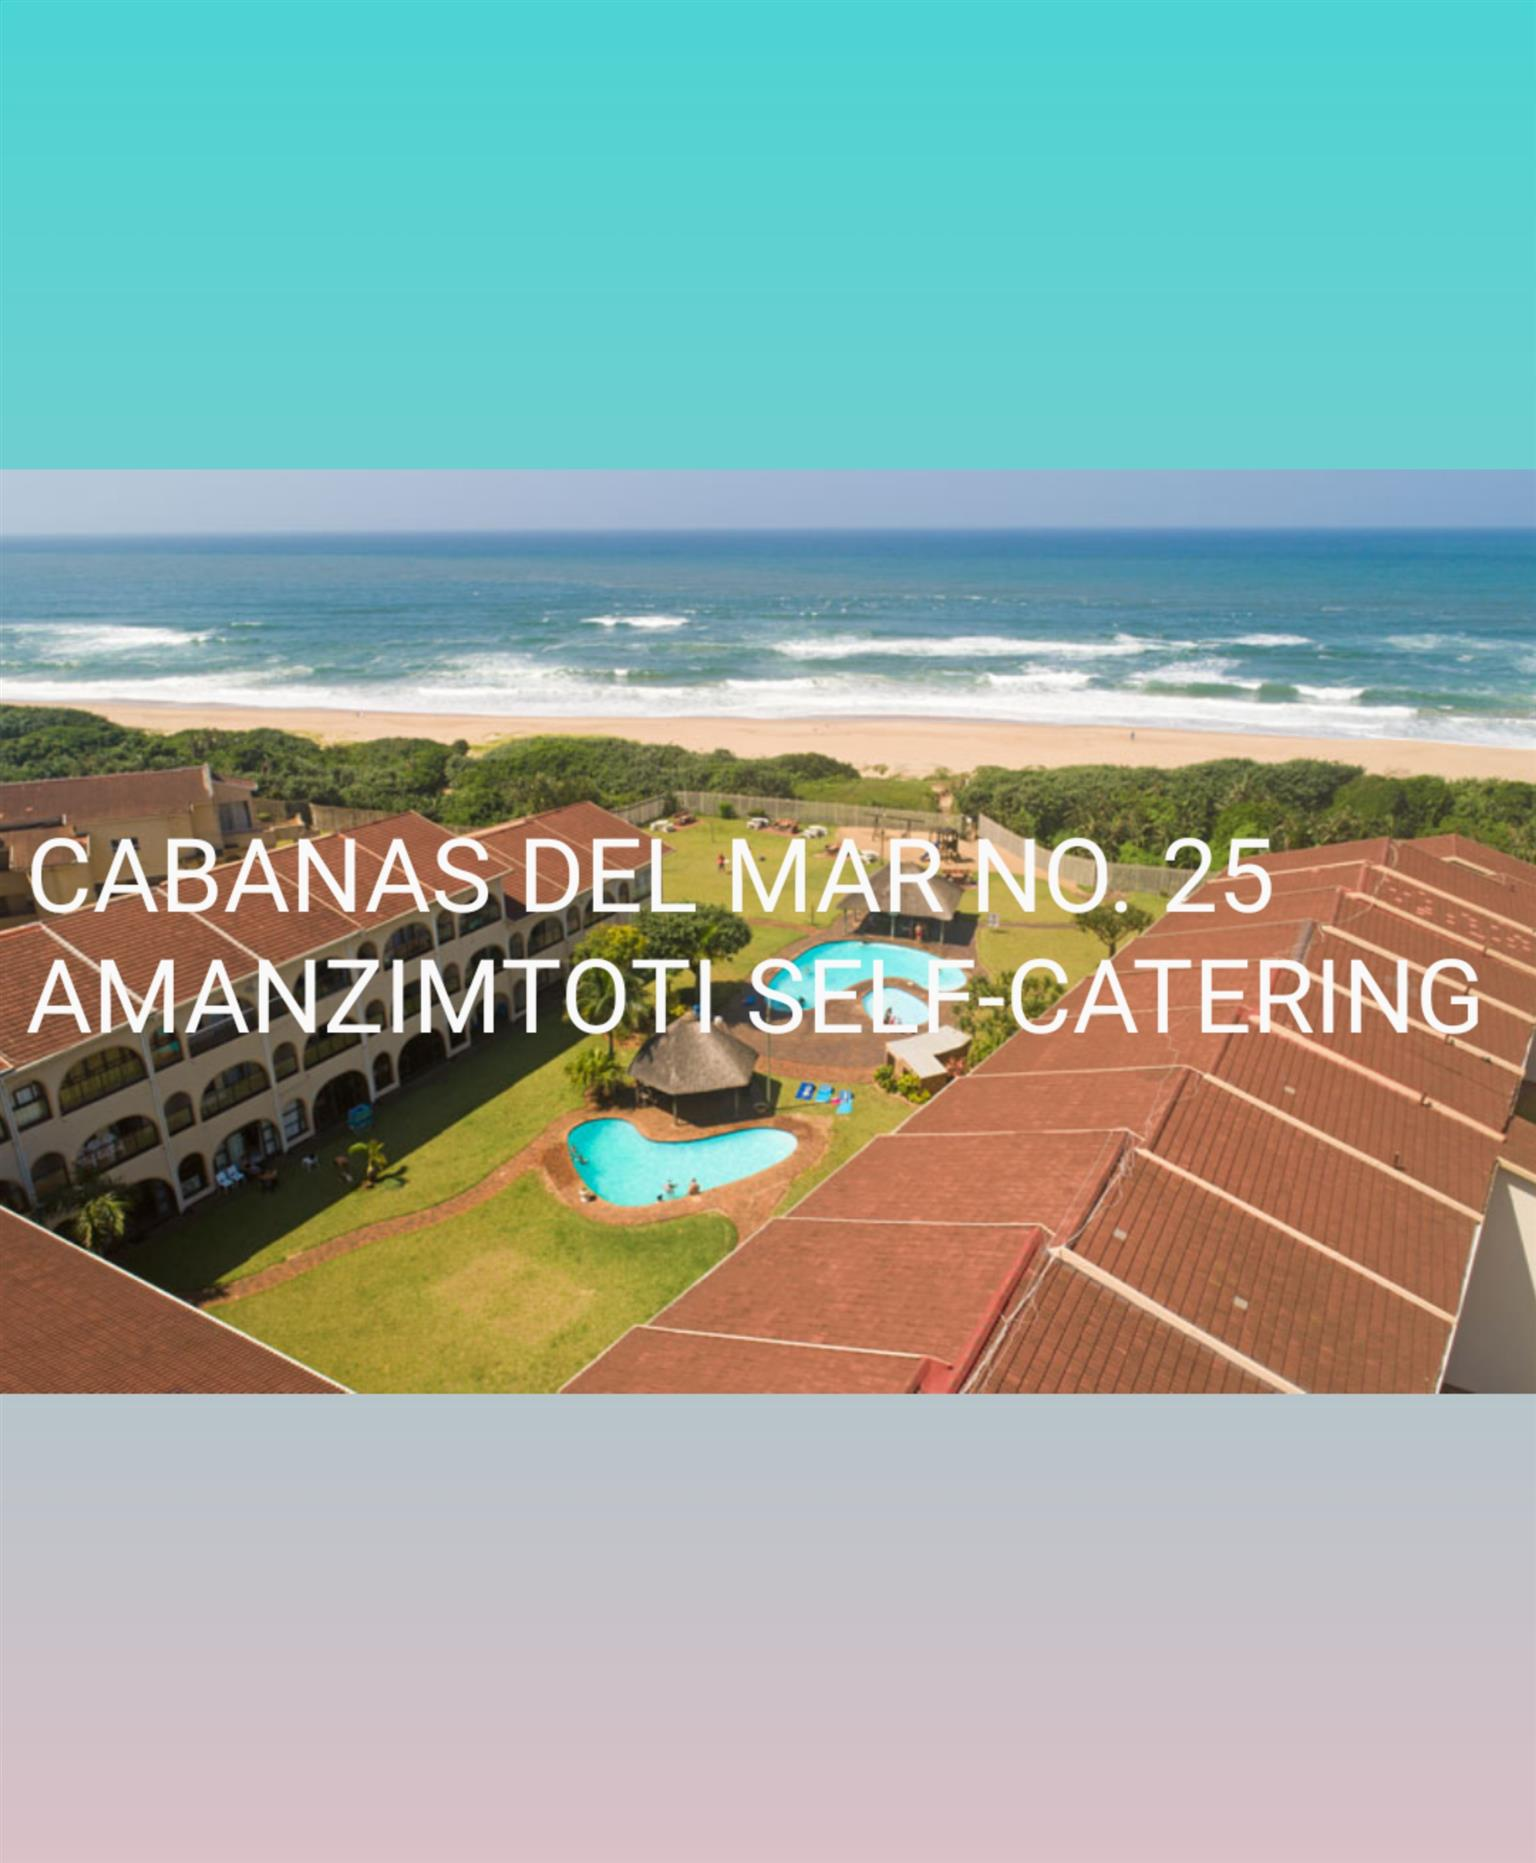 DECEMBER VACATION RENTALS - 2 BED, SELF-CATERING, RIGHT ON THE BEACH, GROUND FLOOR UNIT, 24 HR SECURITY, WINKELSPRUIT, AMANZIMTOTI